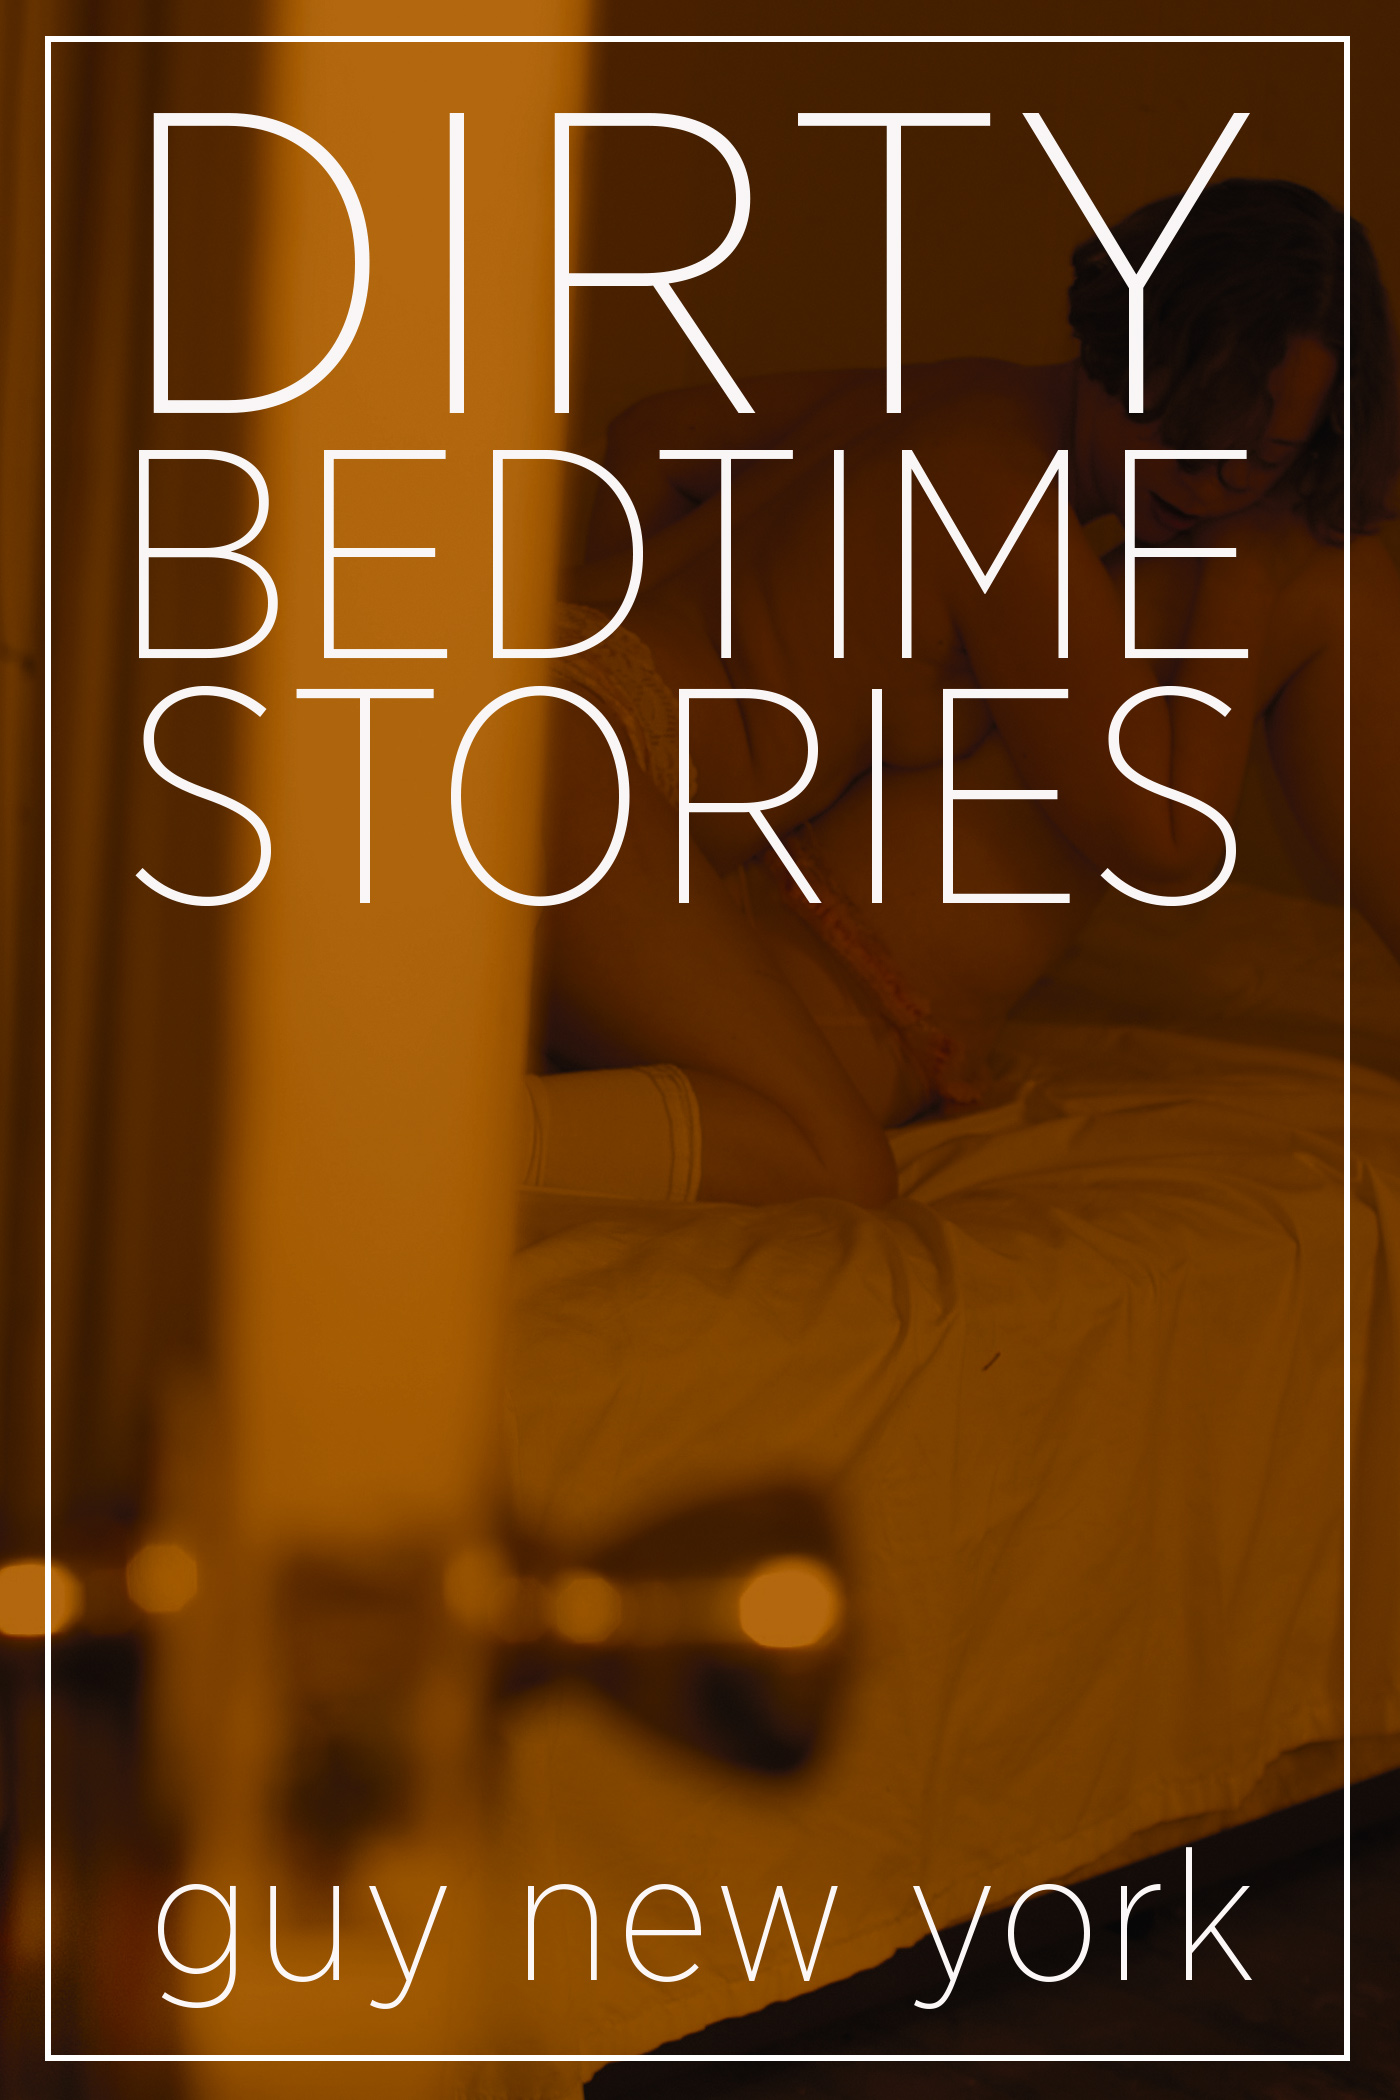 Dirty Bedtime Stories, Erotica from Guy New York